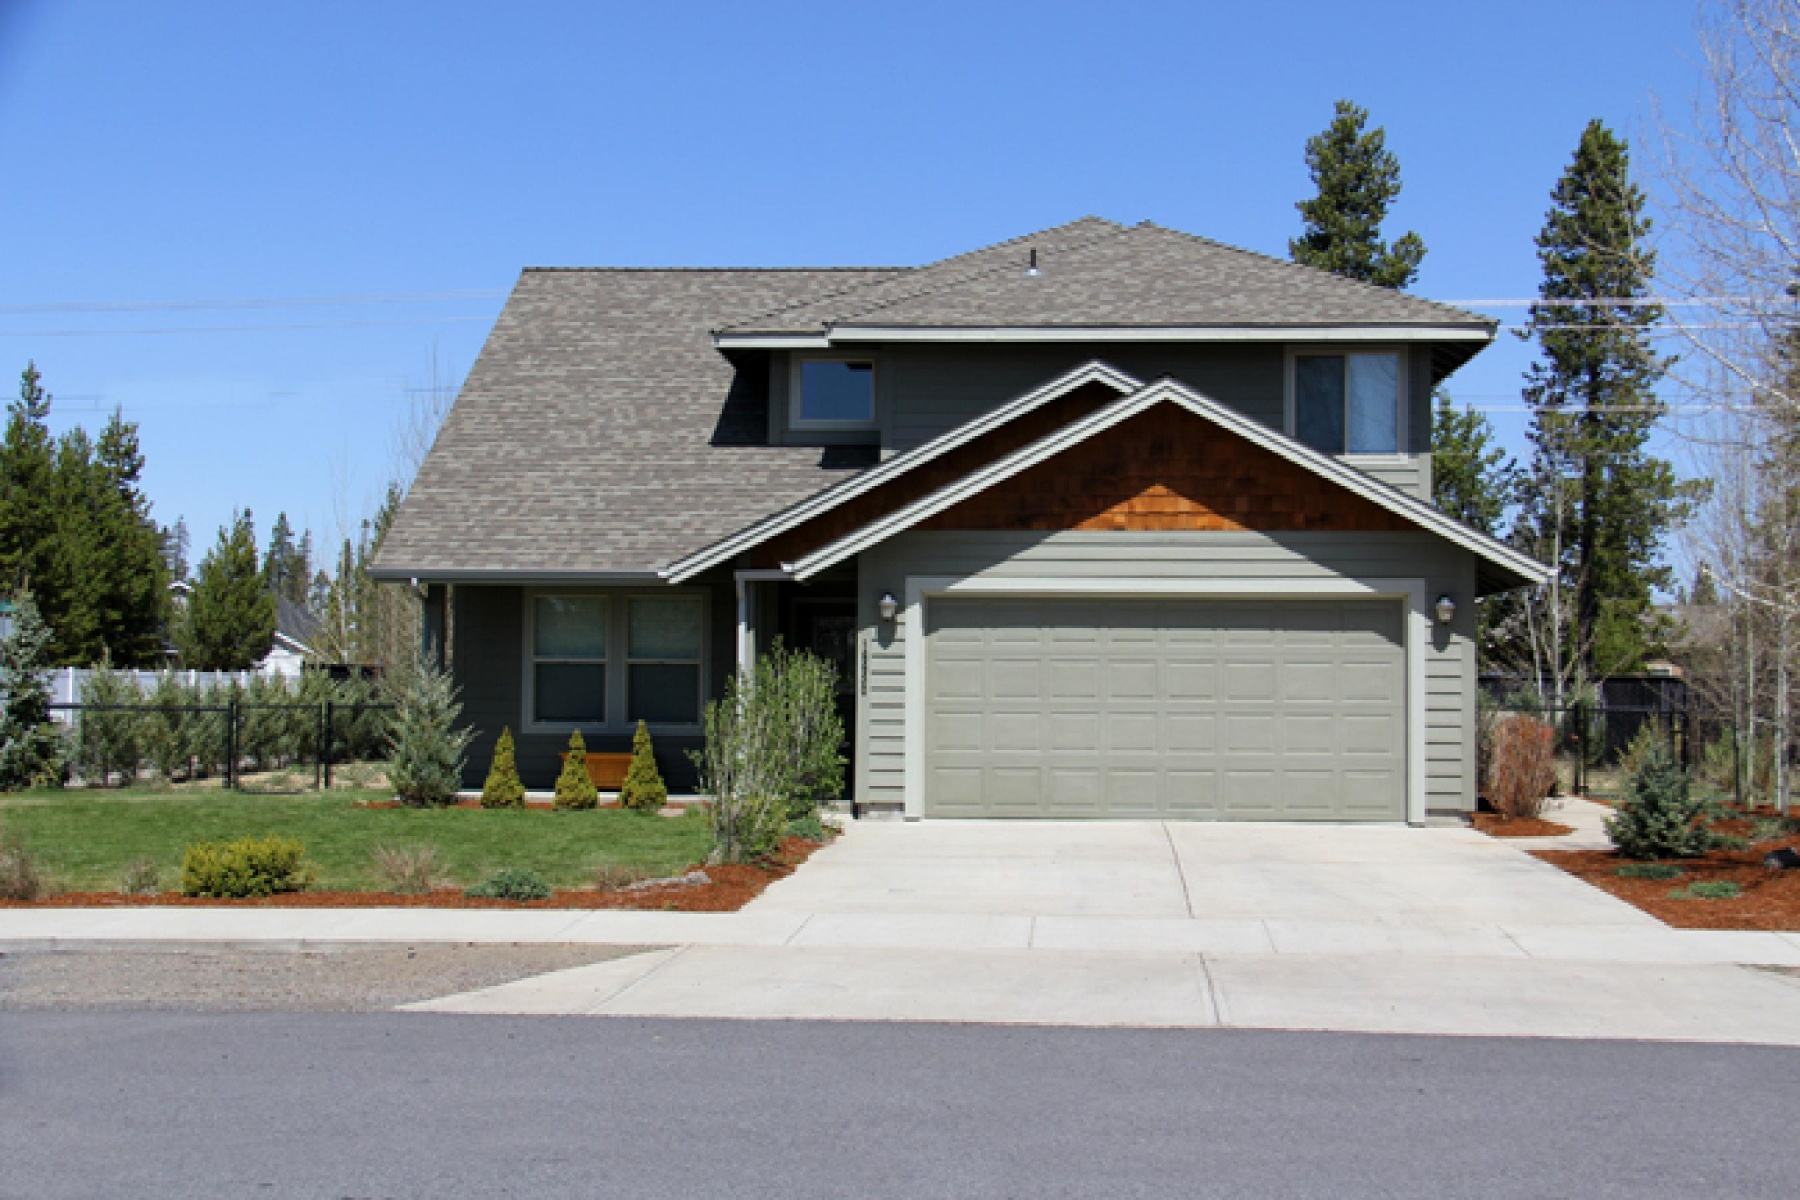 Single Family Home for Sale at 16650 Apache Tears Court, LA PINE 16650 Apache Tears Ct La Pine, Oregon, 97739 United States